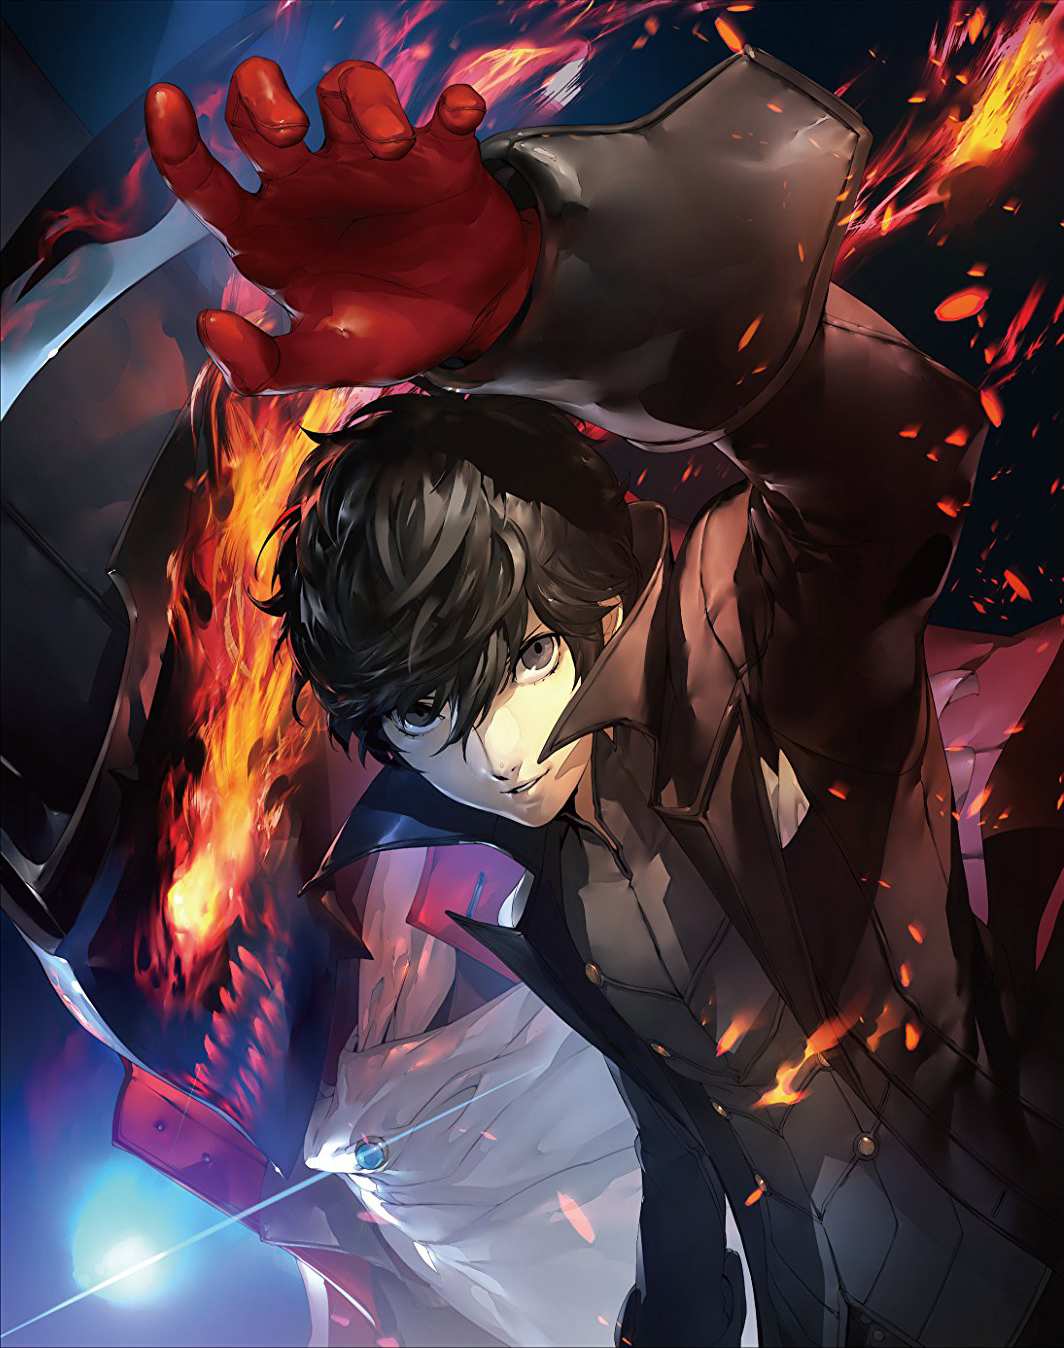 The Art Of Persona 5 (With images) Persona 5 anime